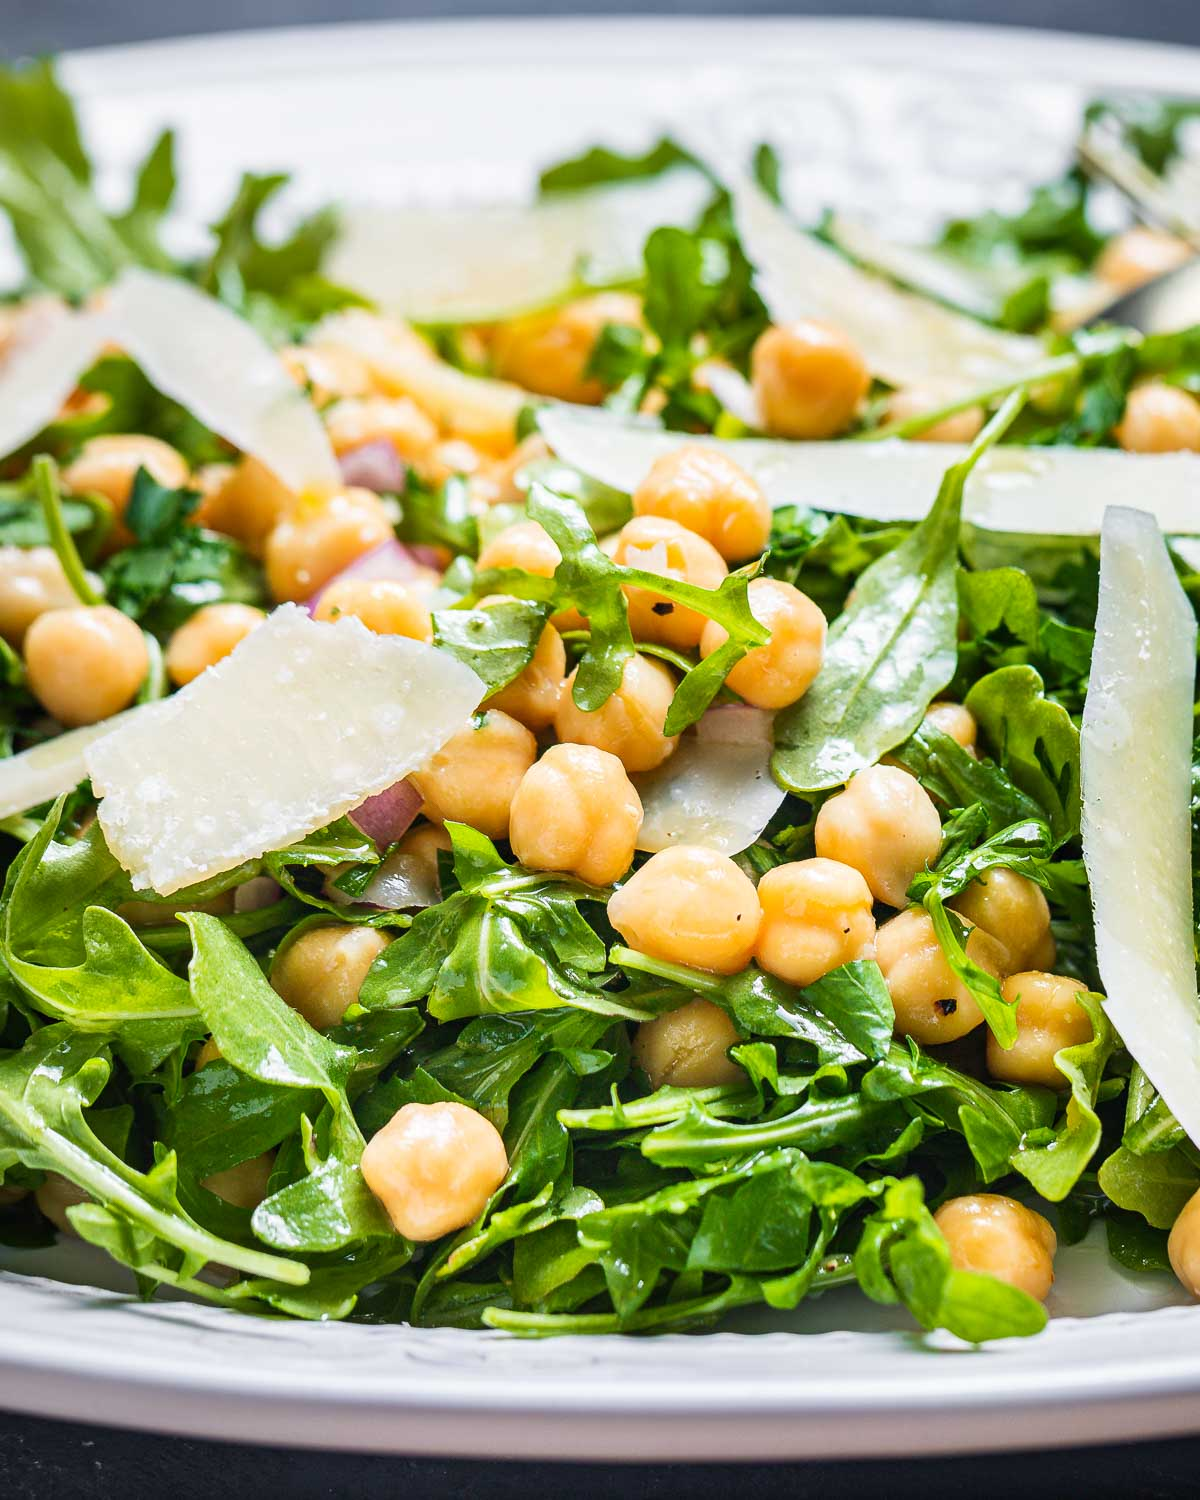 Large white platter of arugula with a few chickpeas and shaved parmesan cheese.